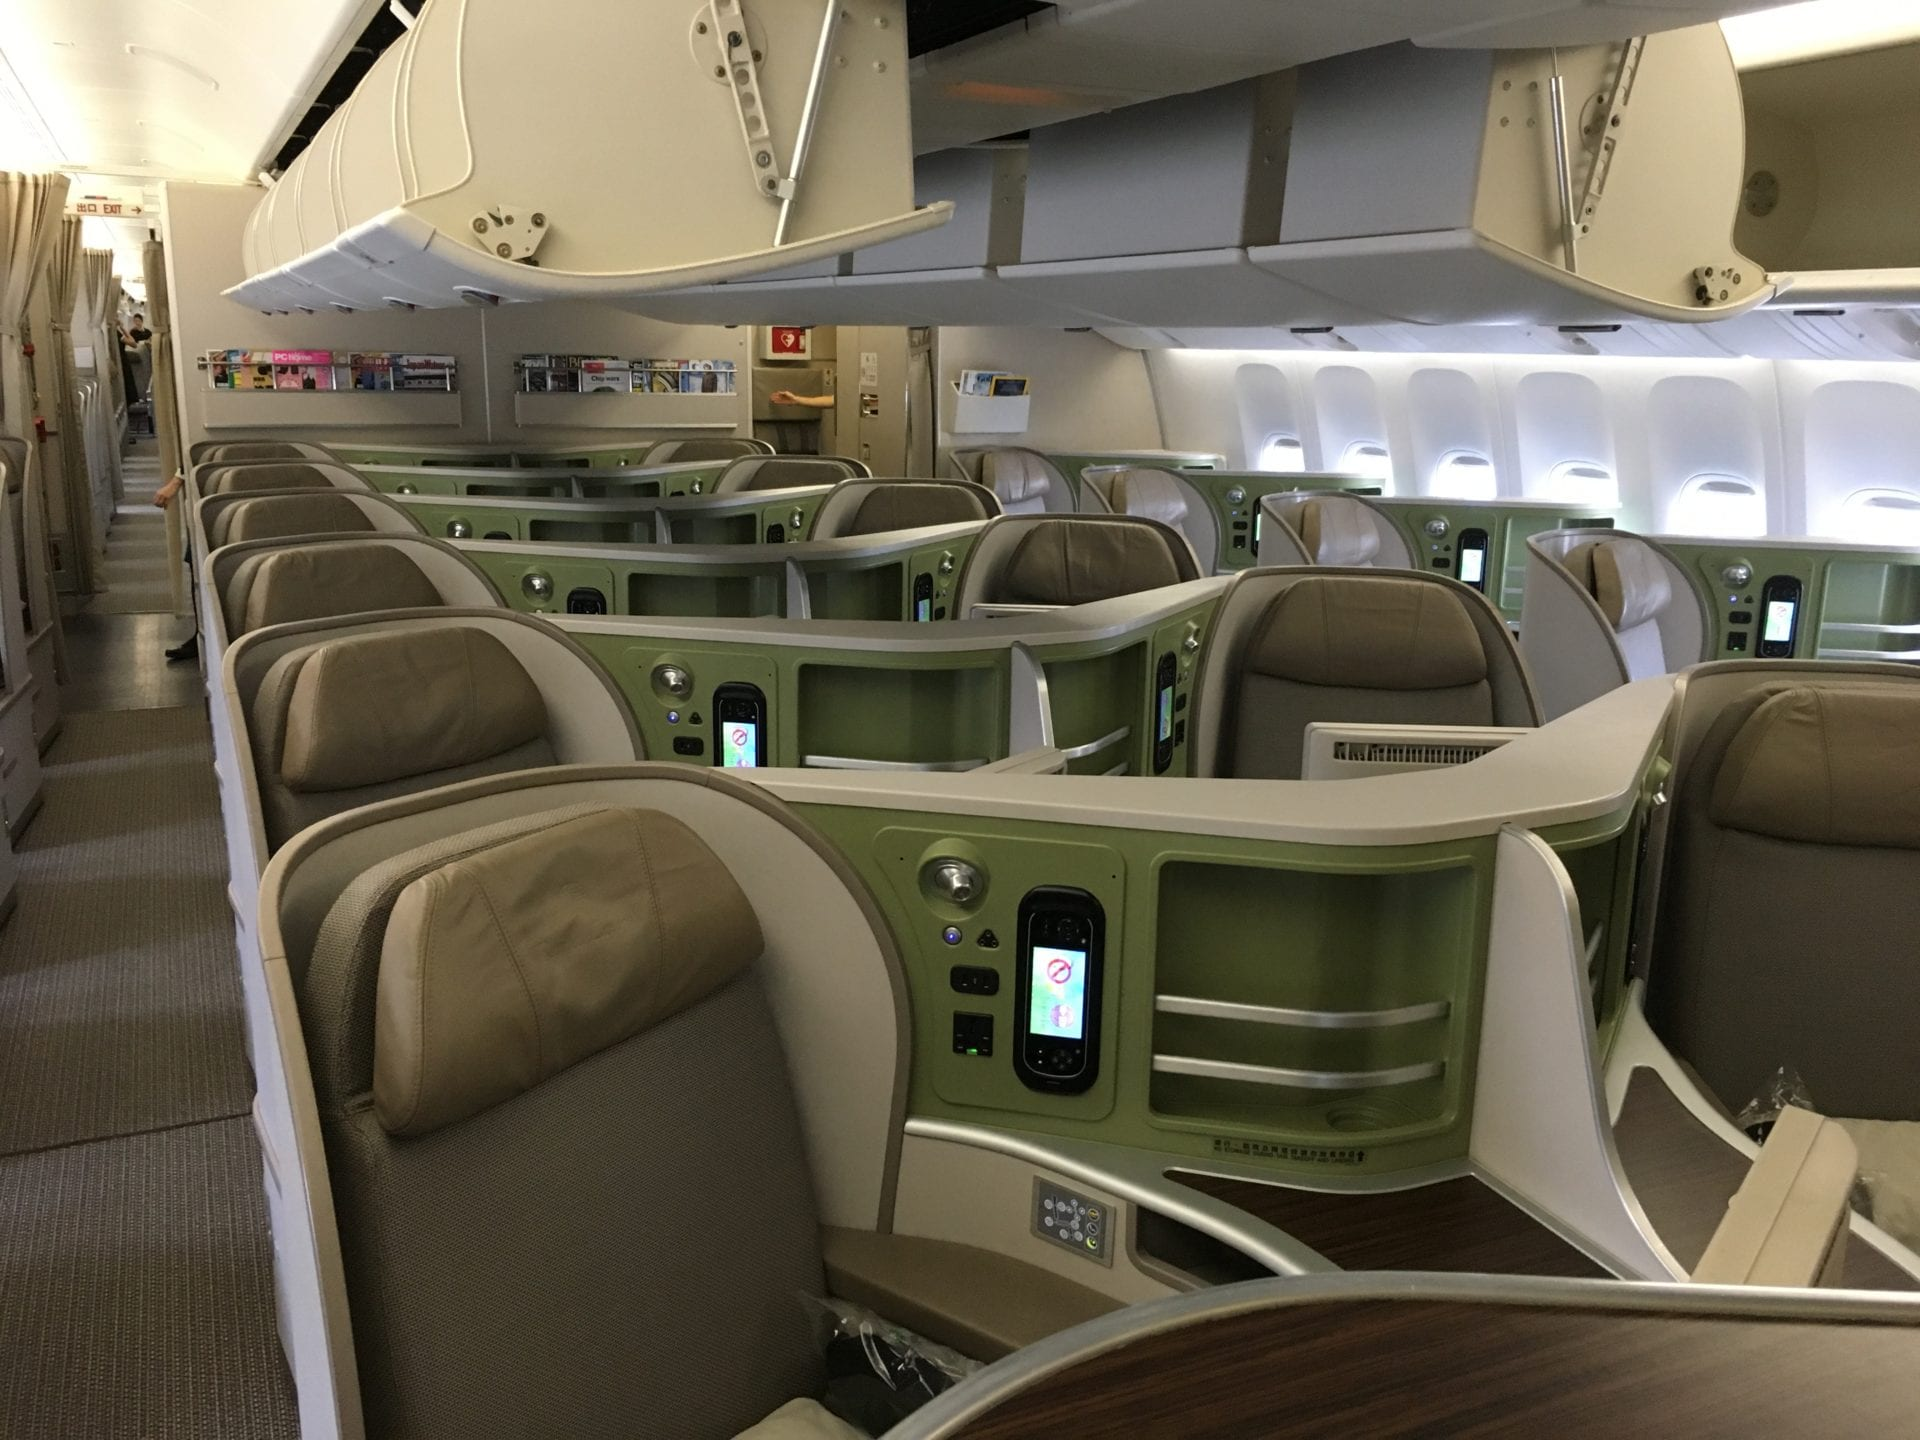 EVA Air Business Class Kabine 777